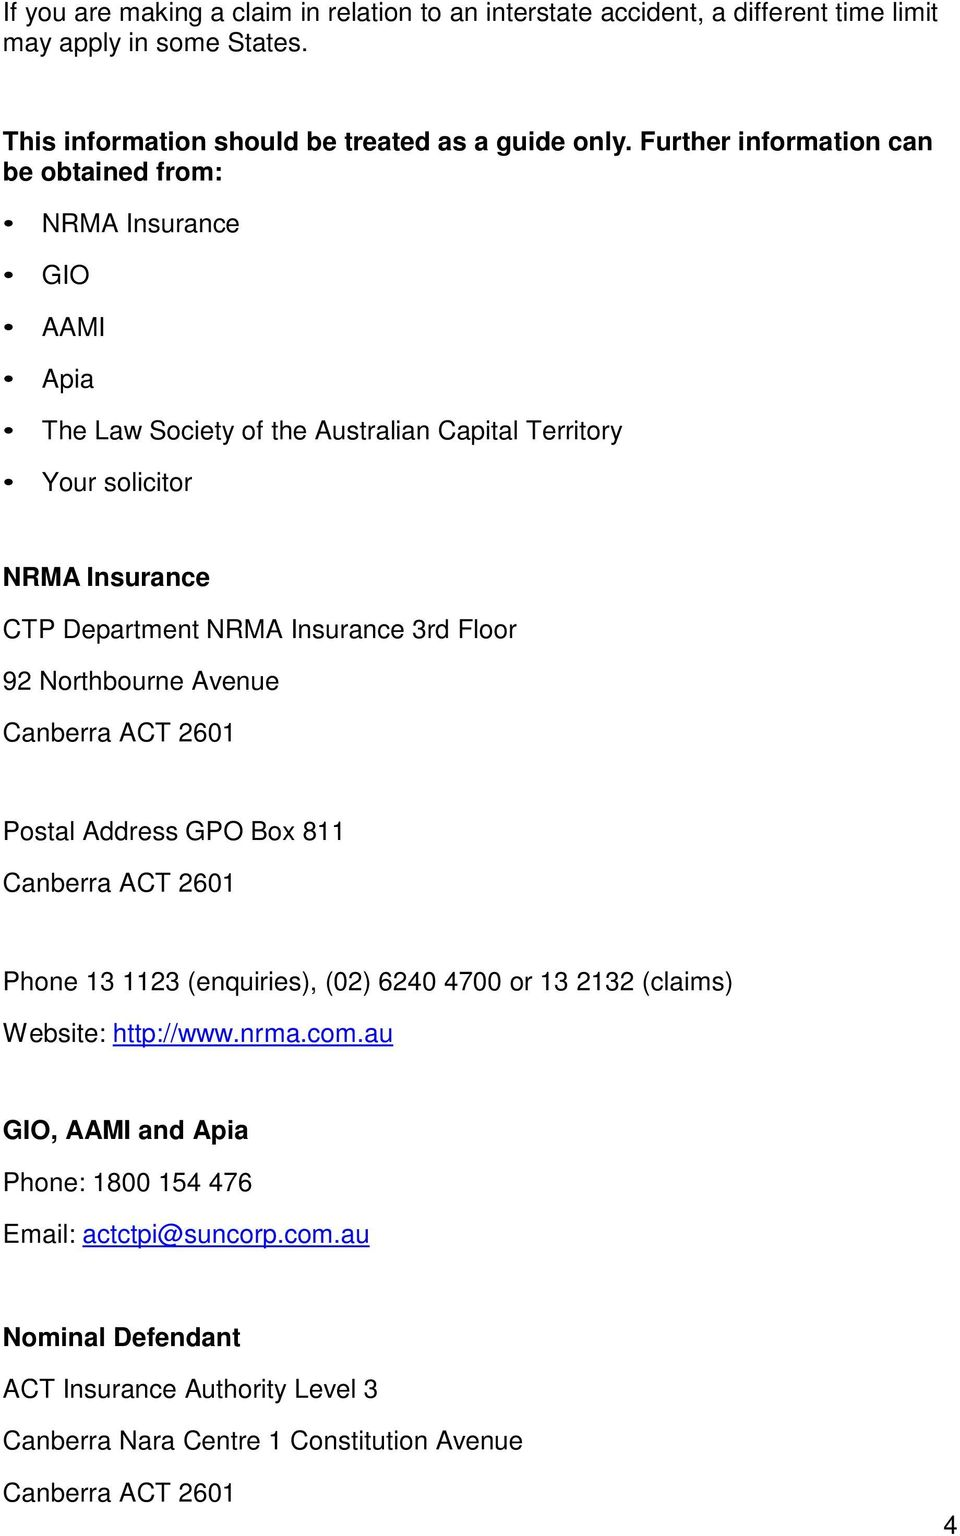 Department NRMA Insurance 3rd Floor 92 Northbourne Avenue Postal Address GPO Box 811 Phone 13 1123 (enquiries), (02) 6240 4700 or 13 2132 (claims) Website: http://www.